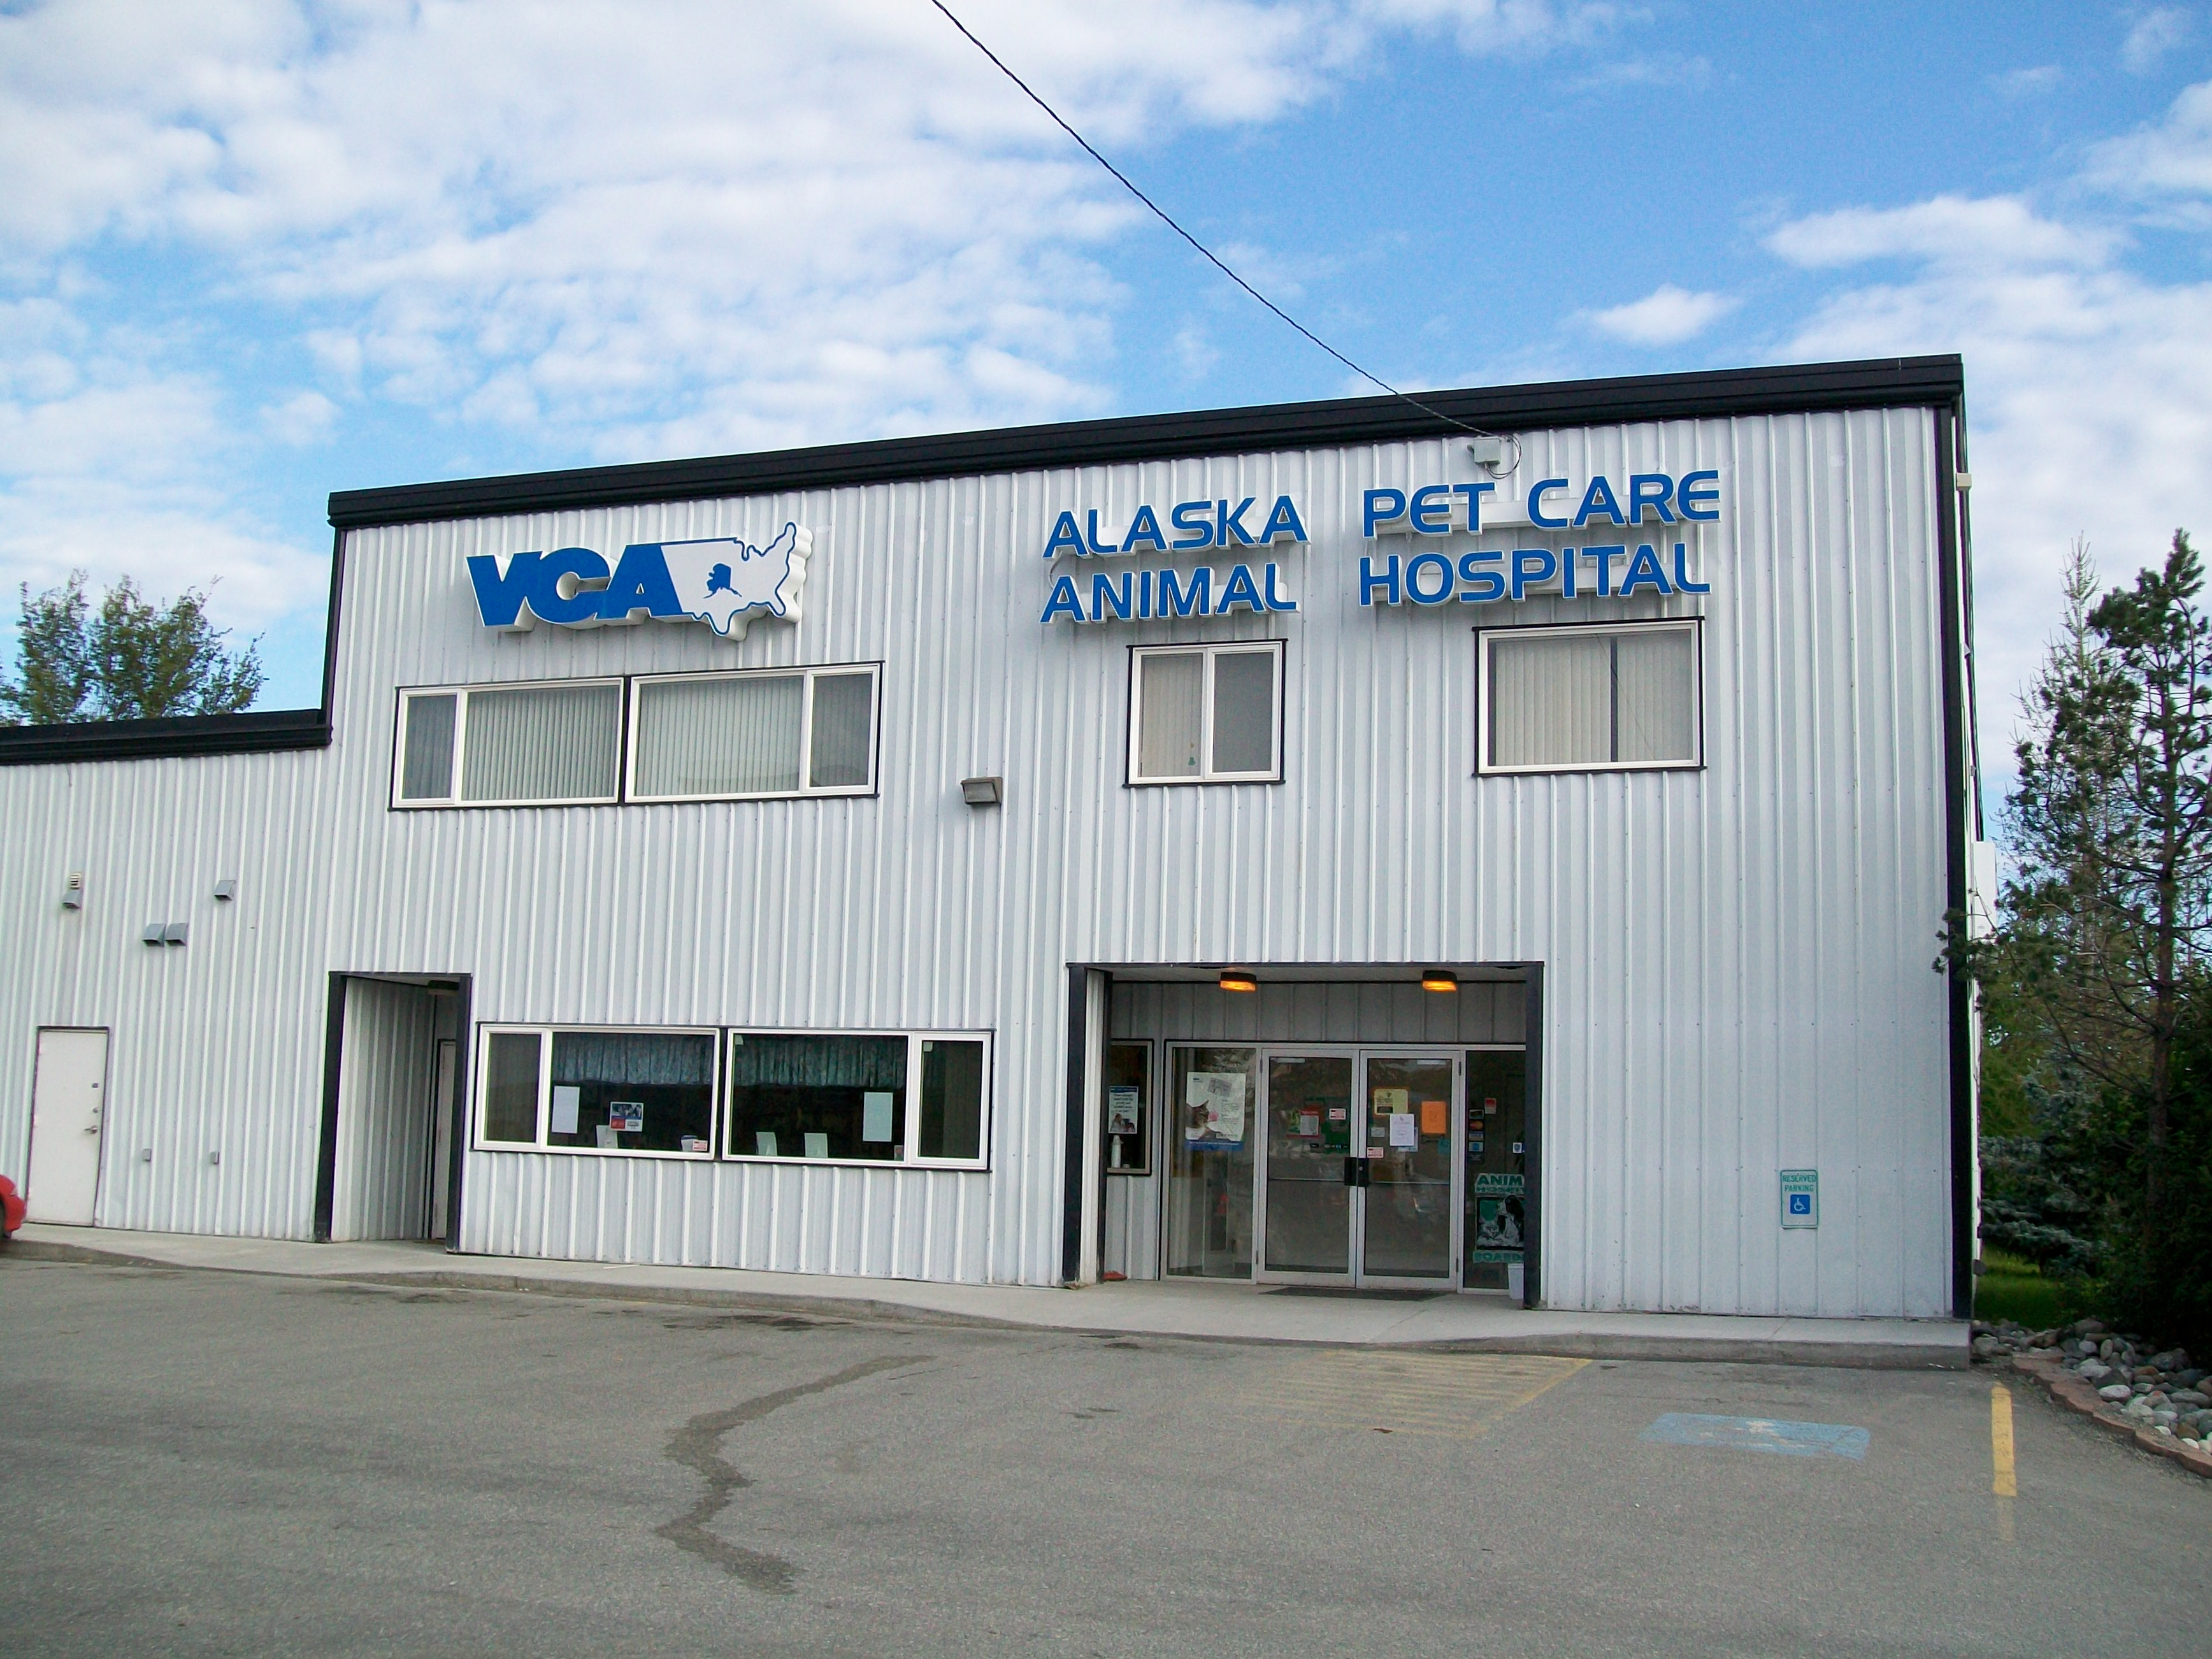 VCA Alaska Pet Care Animal Hospital